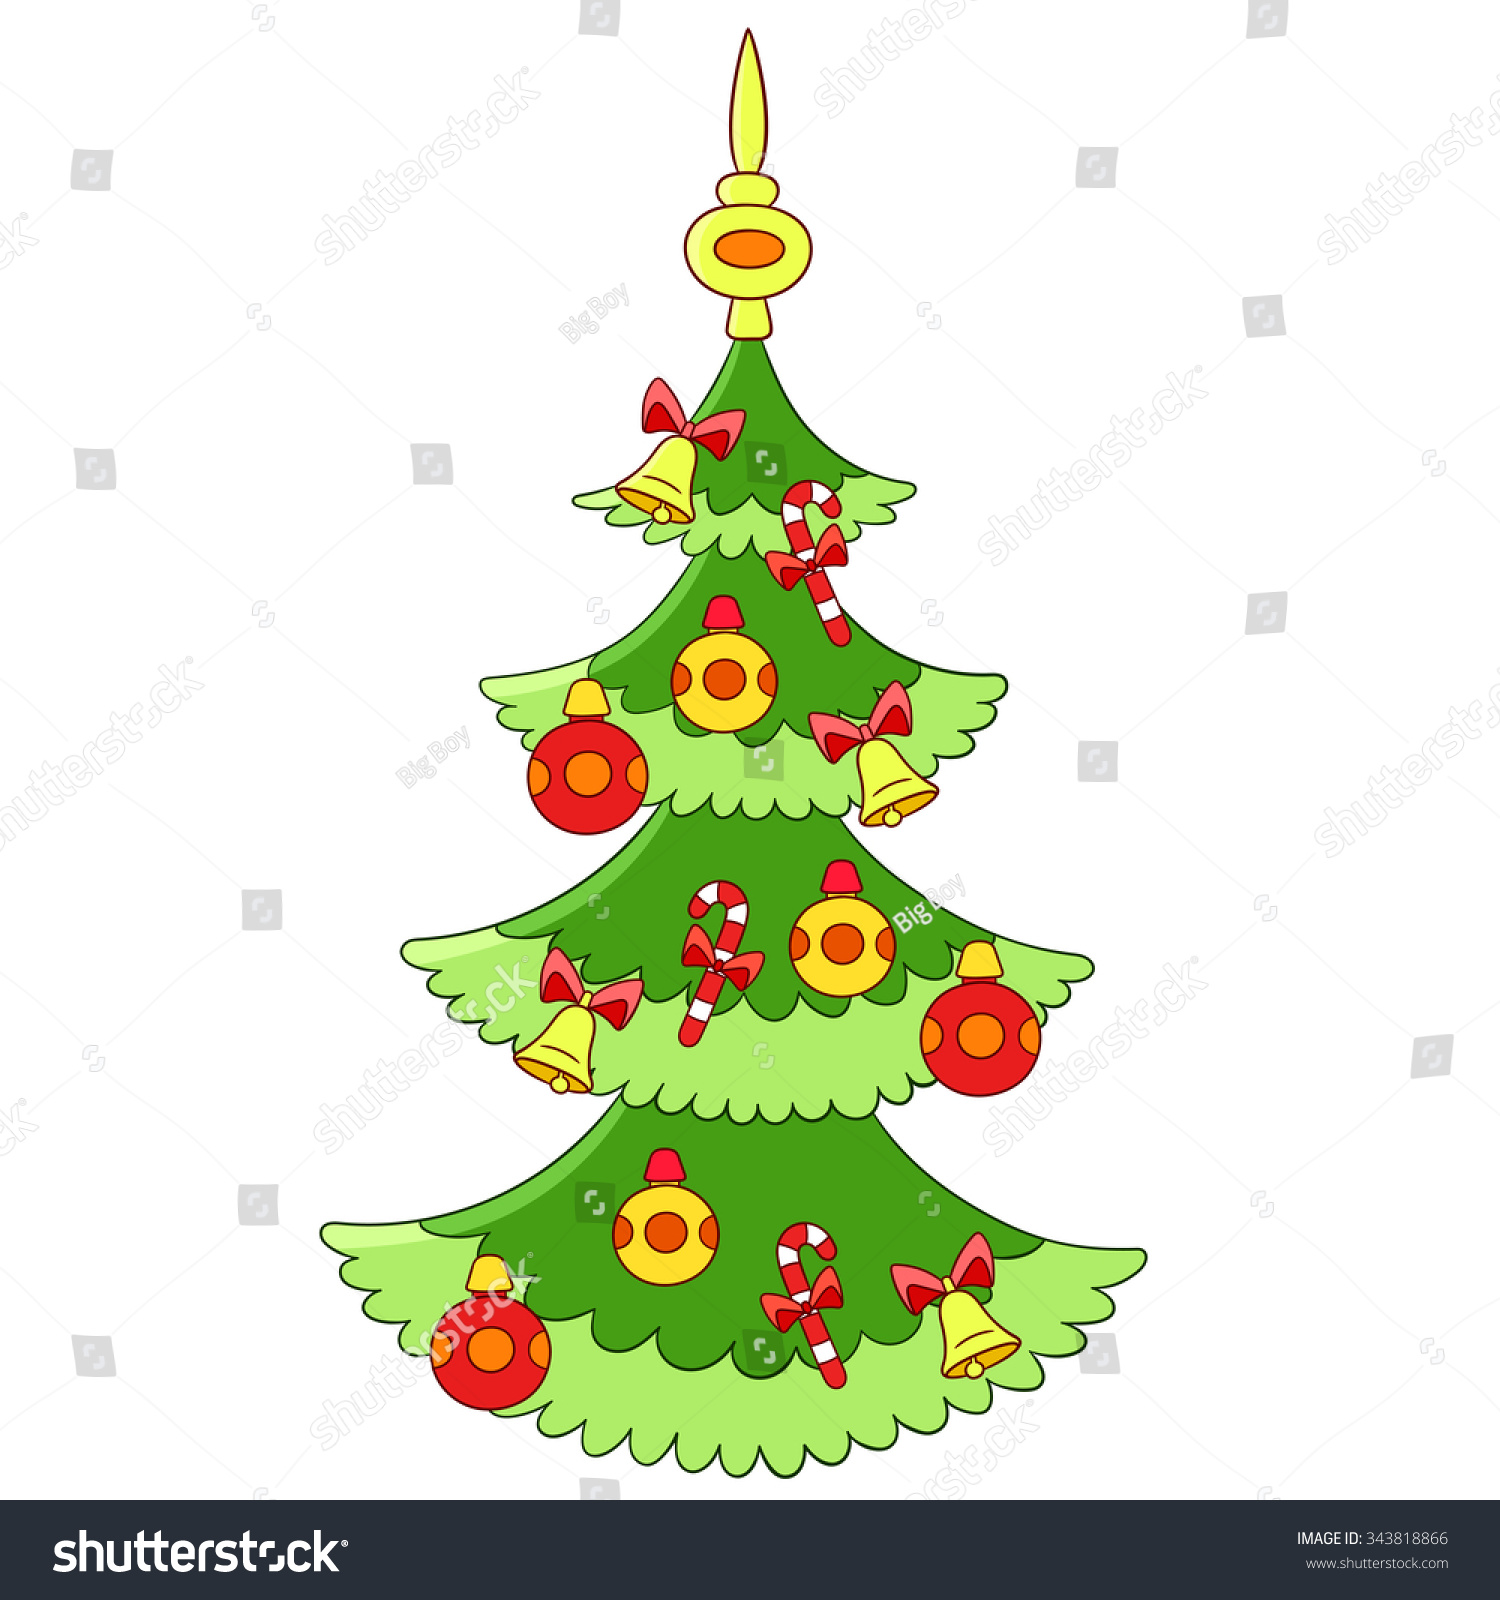 Christmas Tree Baubles Candy Sticks Jingle Stock Vector 343818866 ...